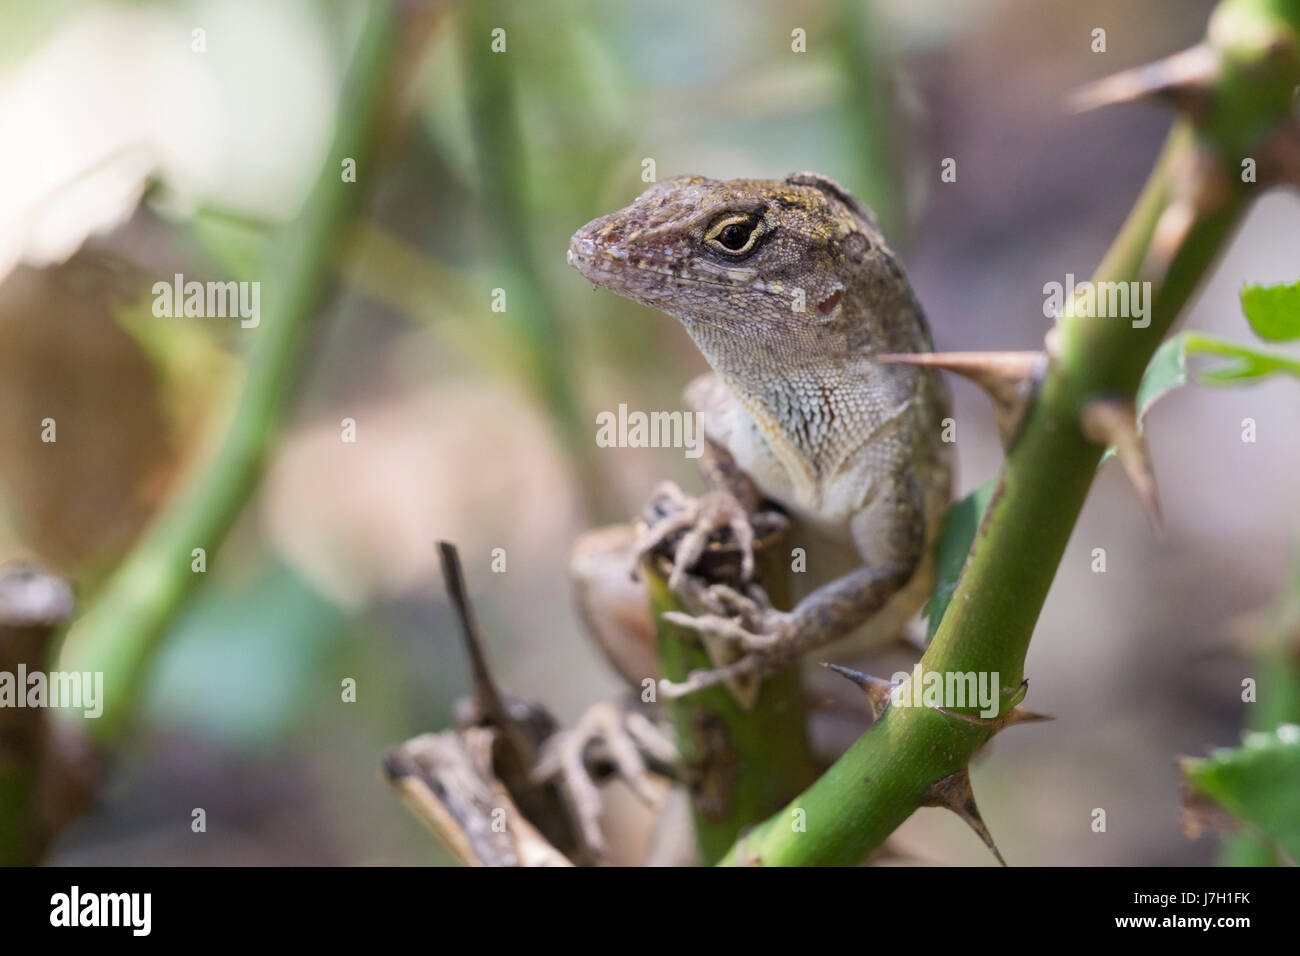 Cuban brown anole on rose bush thorns Stock Photo